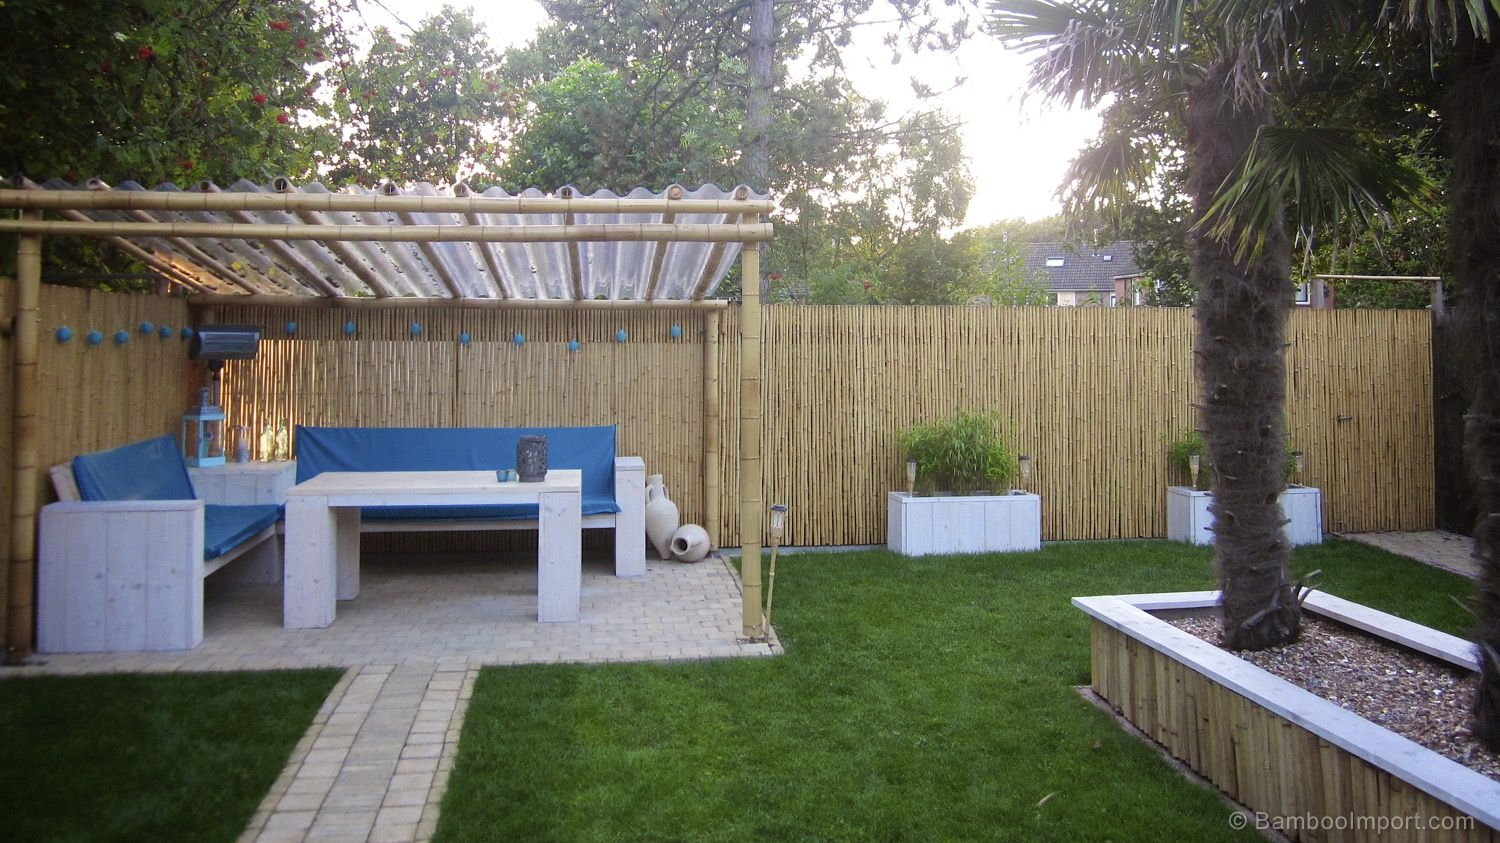 Best Bamboo Fencing For Garden And Outdoor Design: Pergola And Bamboo  Fencing With Patio Furniture And Patio Pavers Also Walkways With Lawn And  Box Planters ...